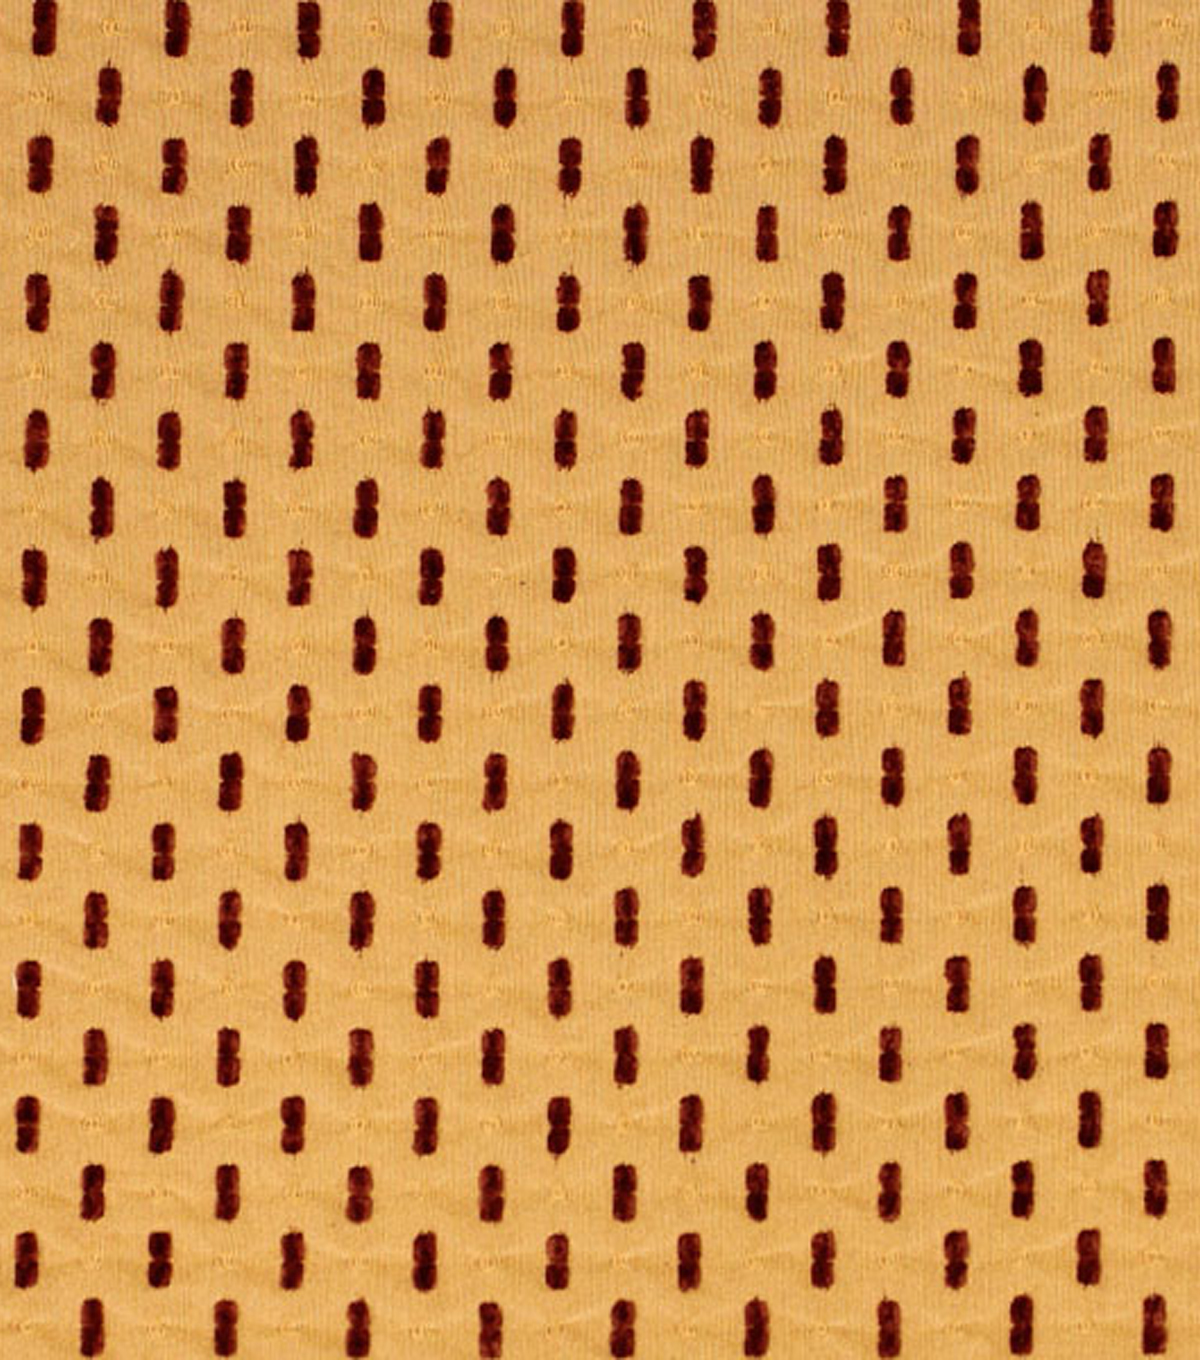 Home Decor 8\u0022x8\u0022 Fabric Swatch-Barrow M8807-5177 Honey